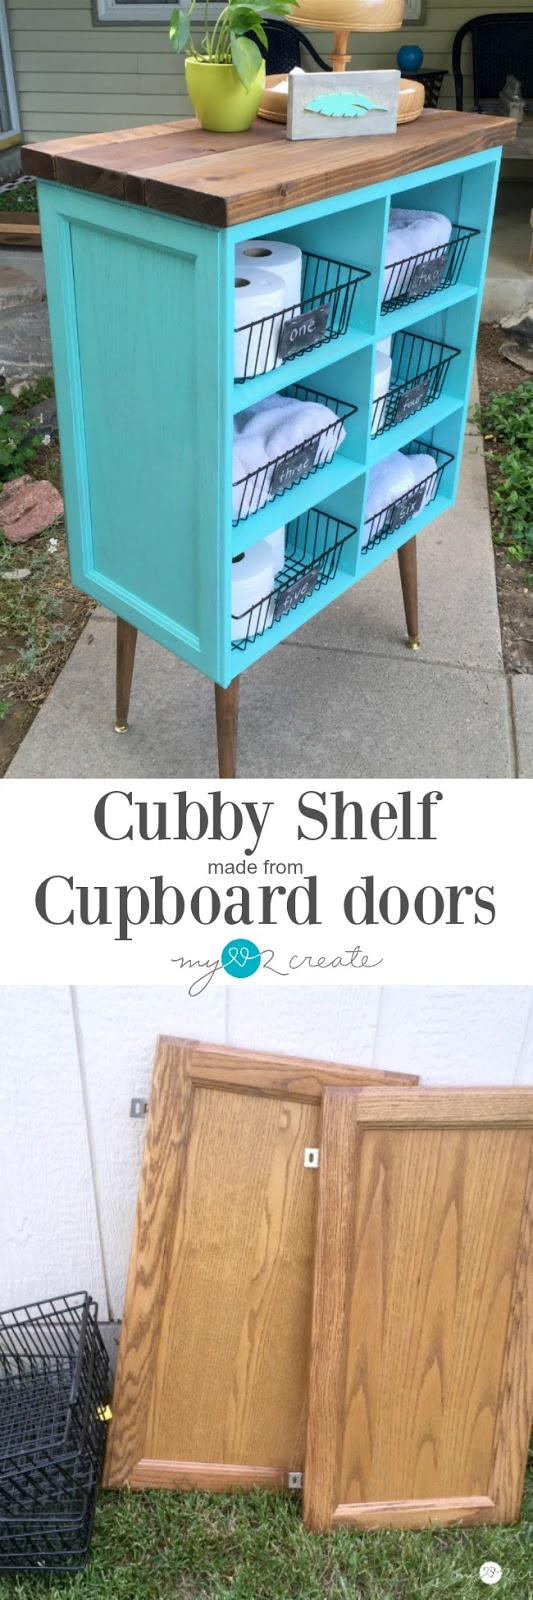 Repurposing cabinet doors to make a cubby shelf